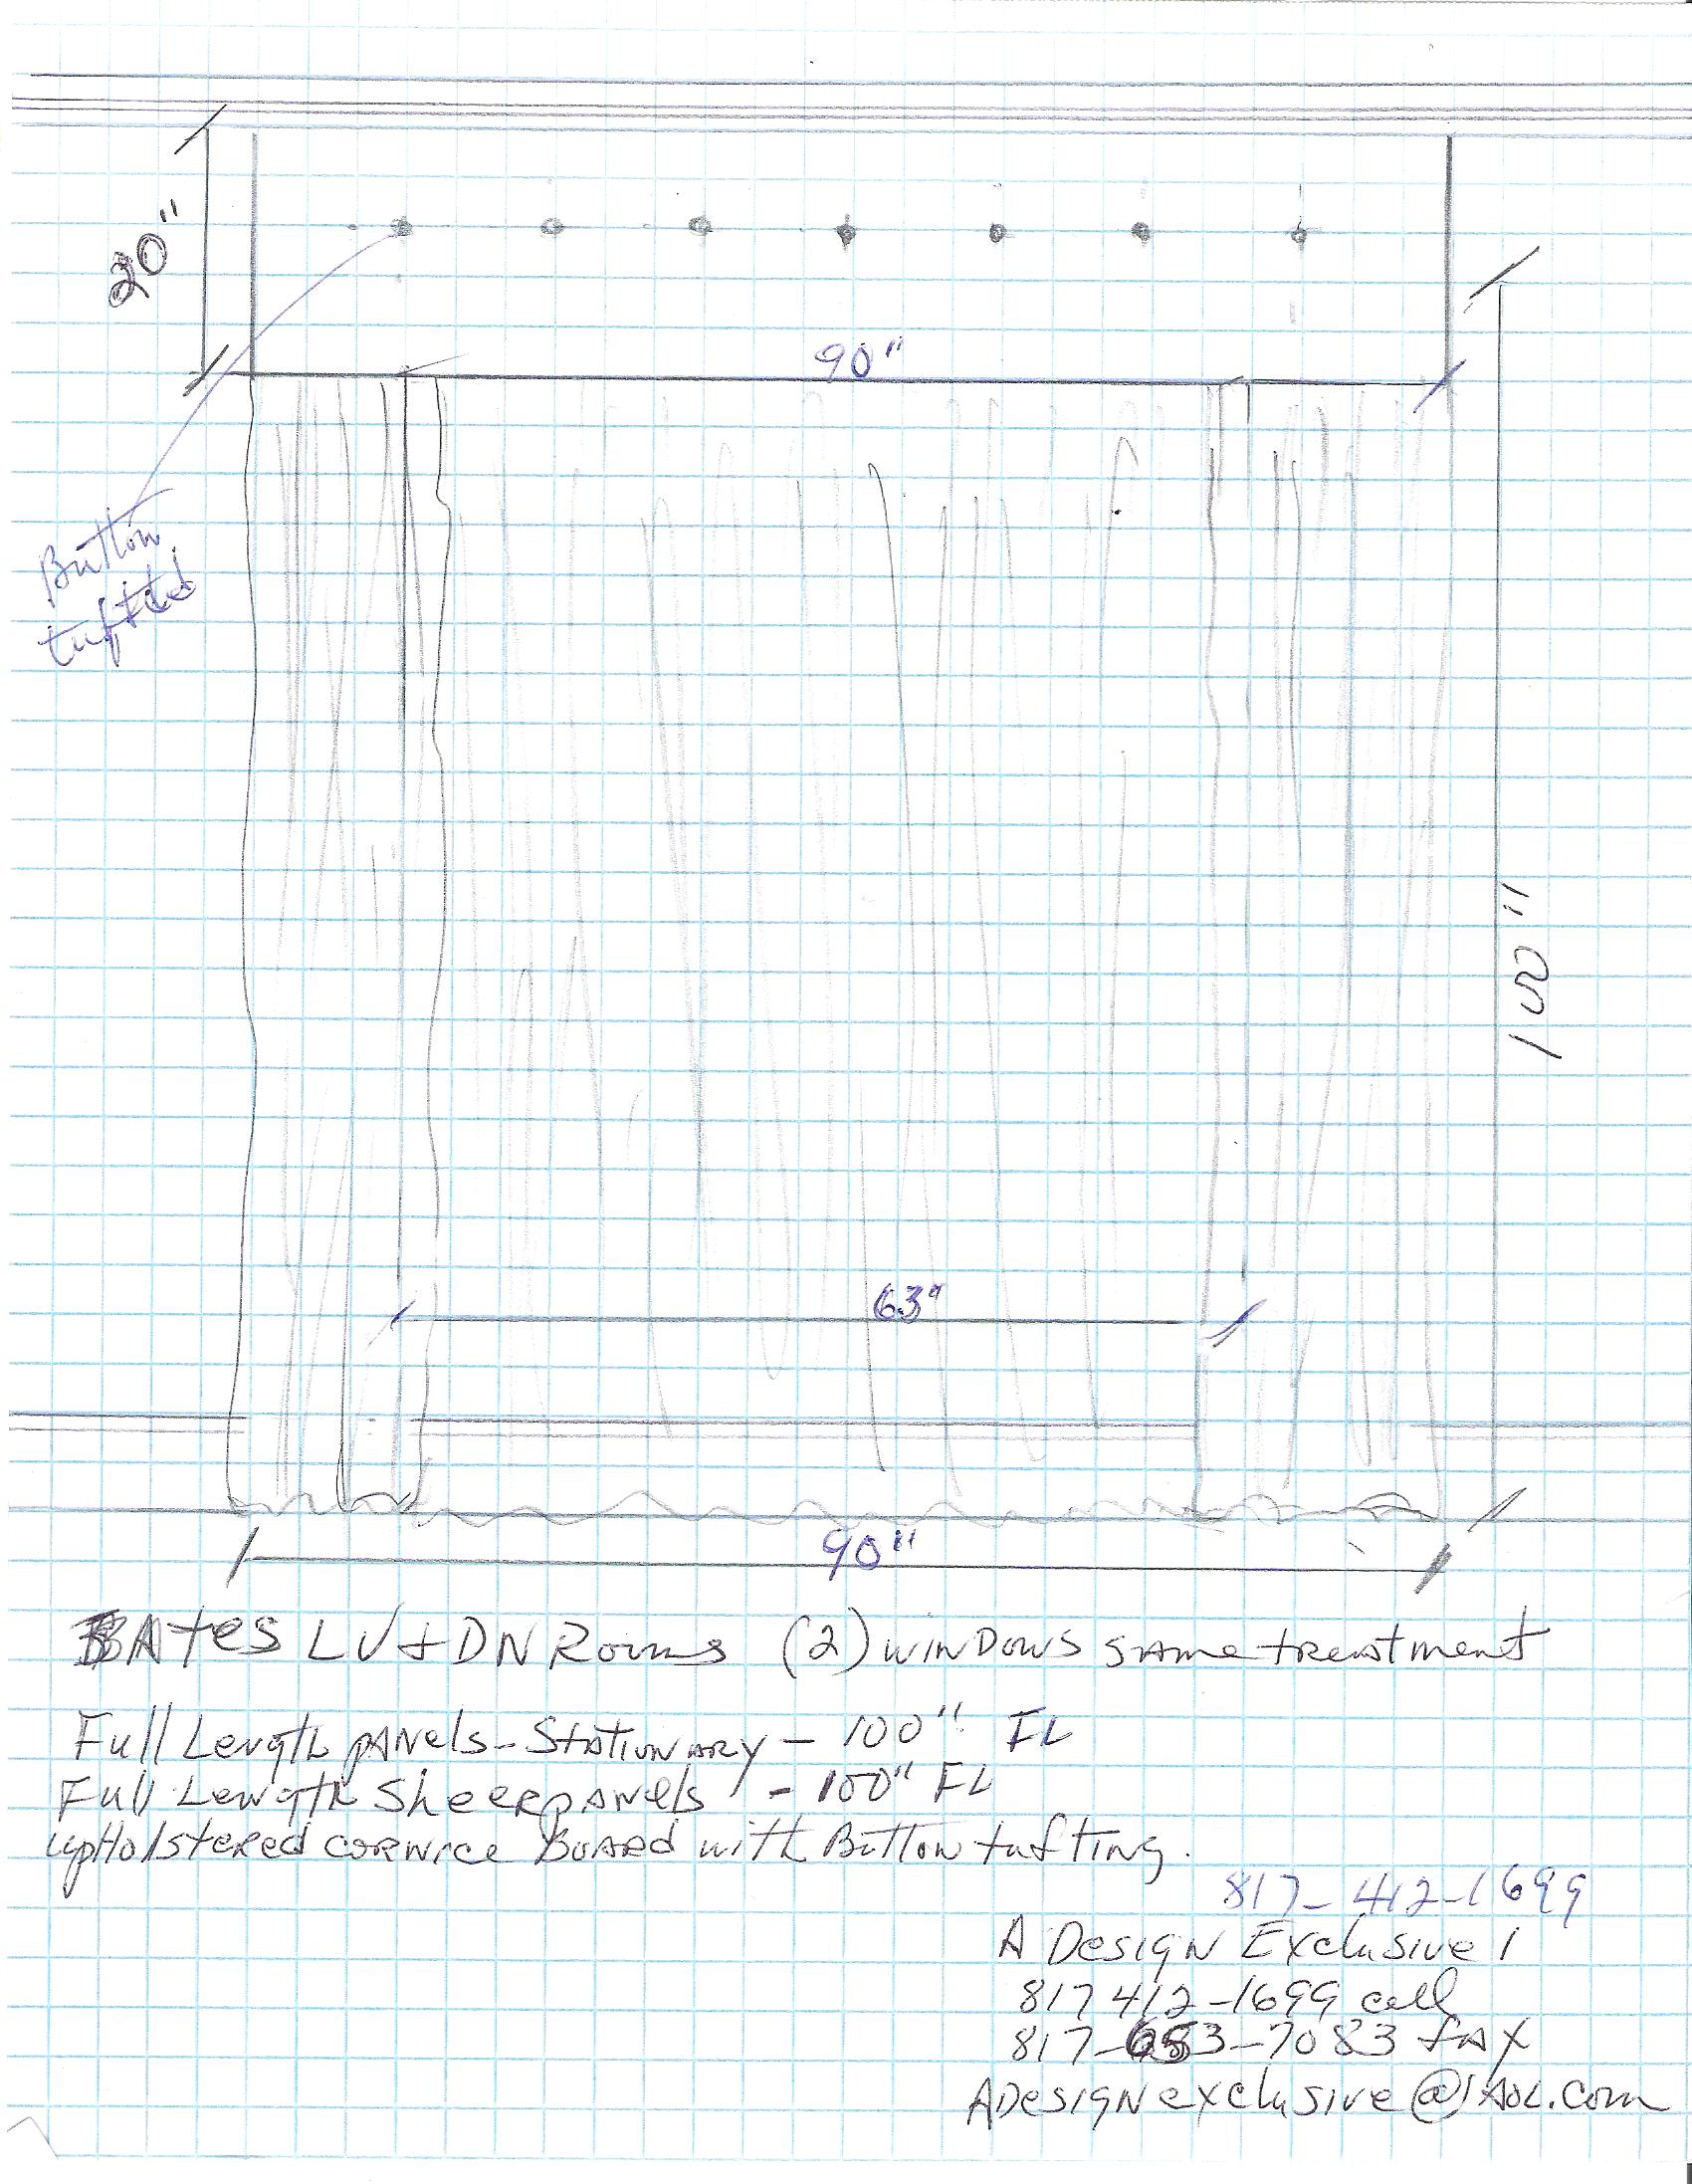 Proposed Window Treatment Sketch